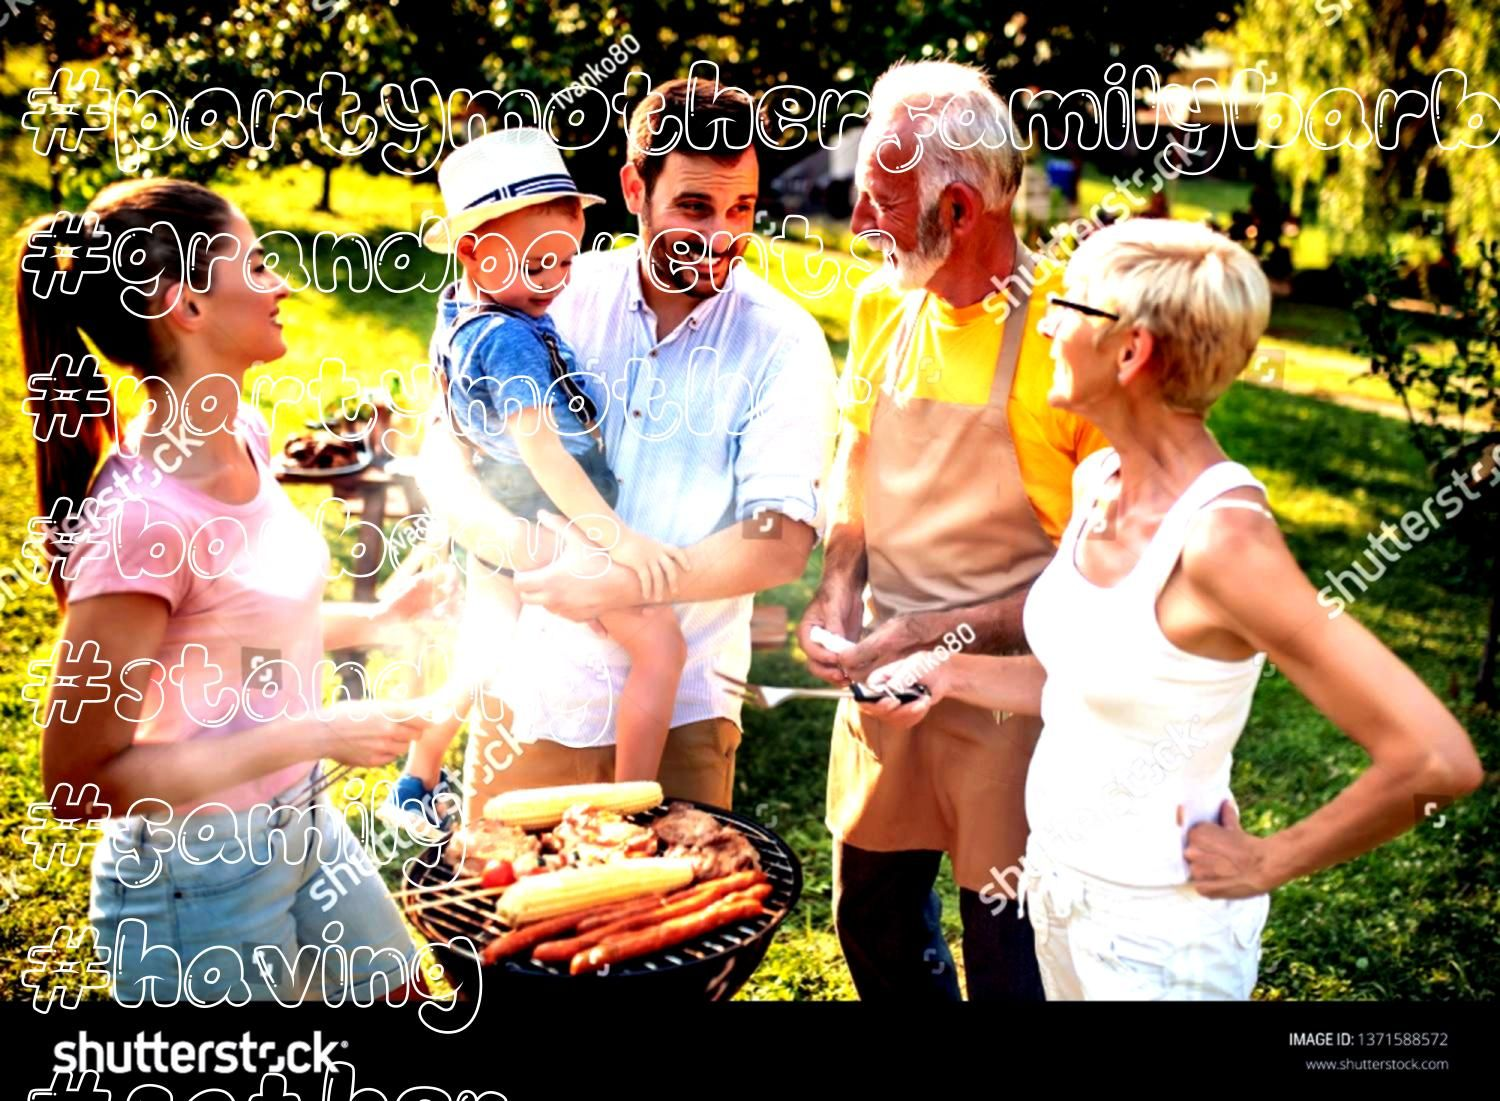 having a barbecue partymother father son and grandparents standing around the grill Family having a barbecue partymother father son and grandparents standing around the g...